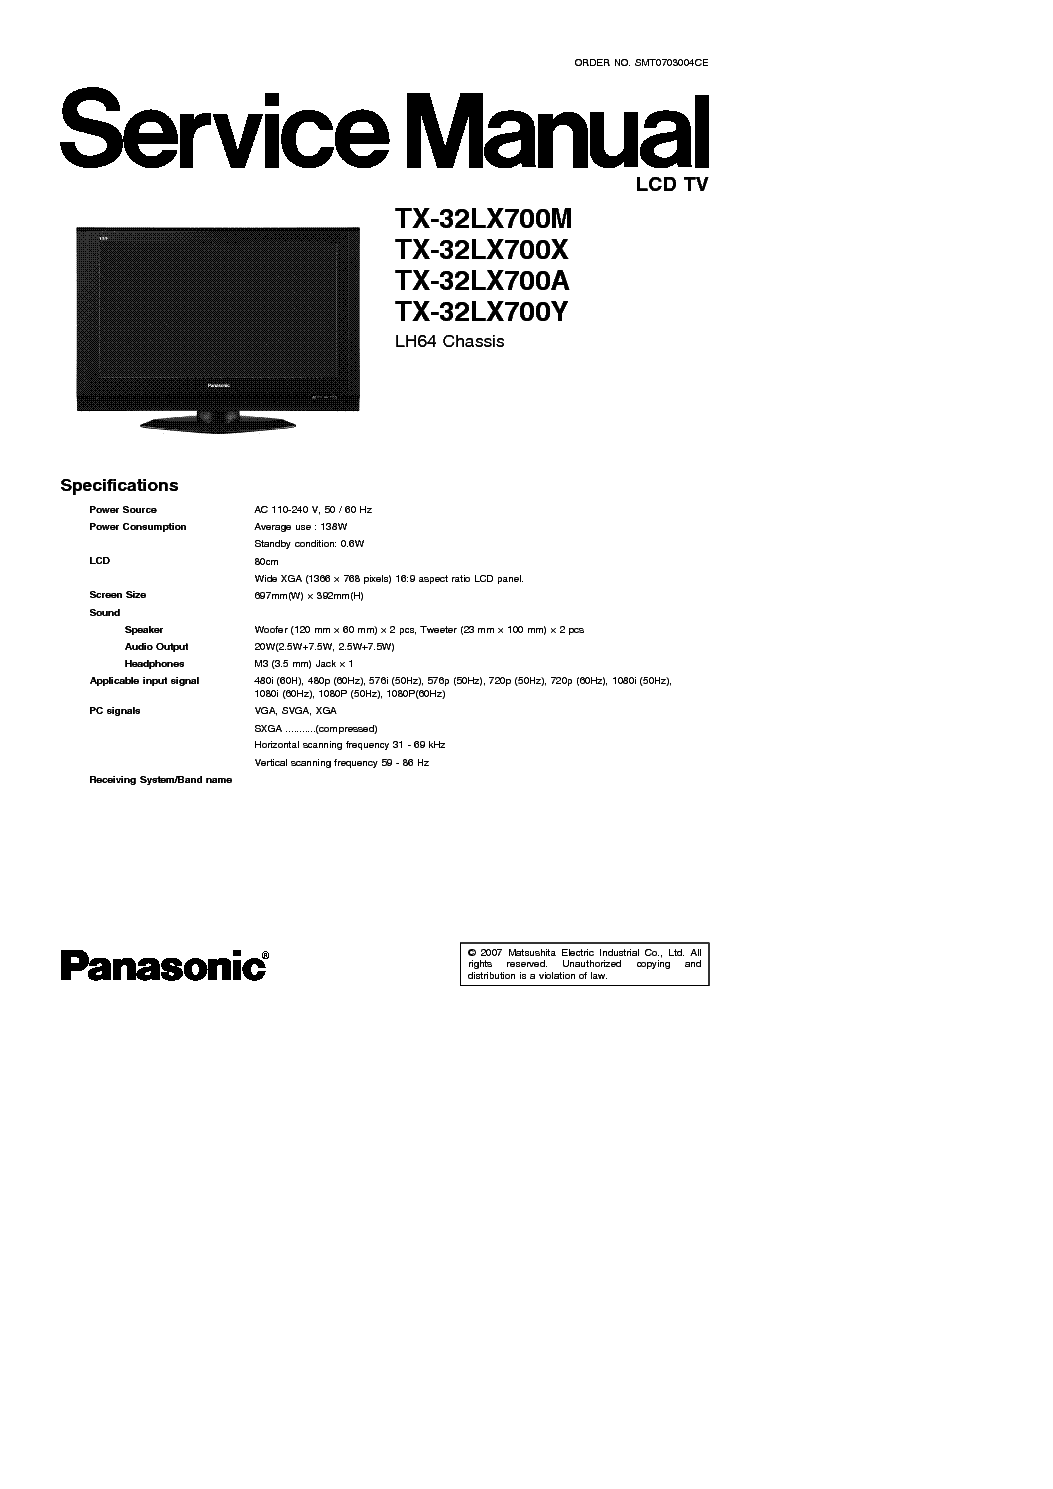 PANASONIC TX-21,25,28MD3 CH EURO-2M Service Manual free